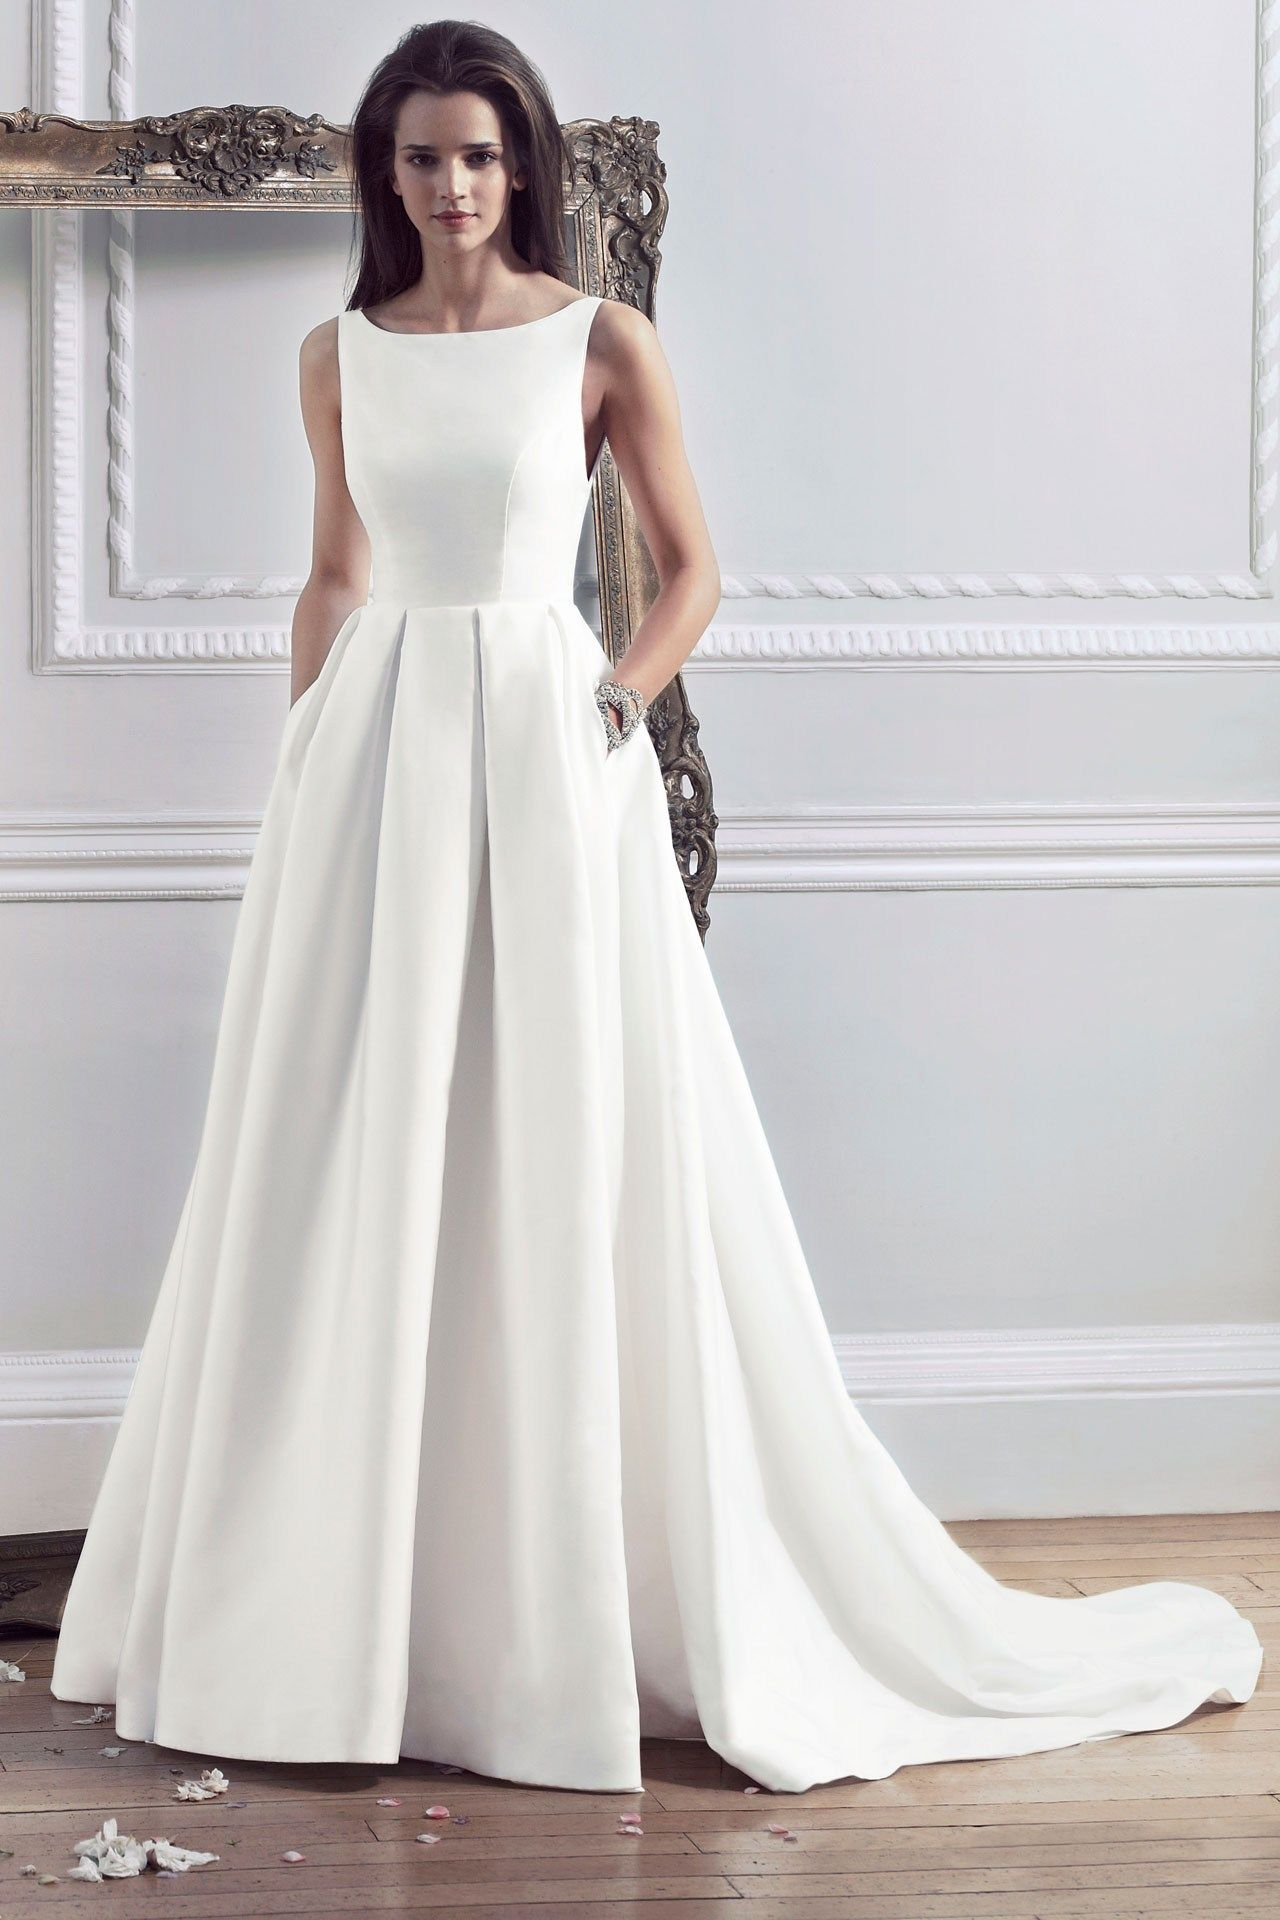 Wedding Dresses Caroline Castigliano I Do Wedding Dress